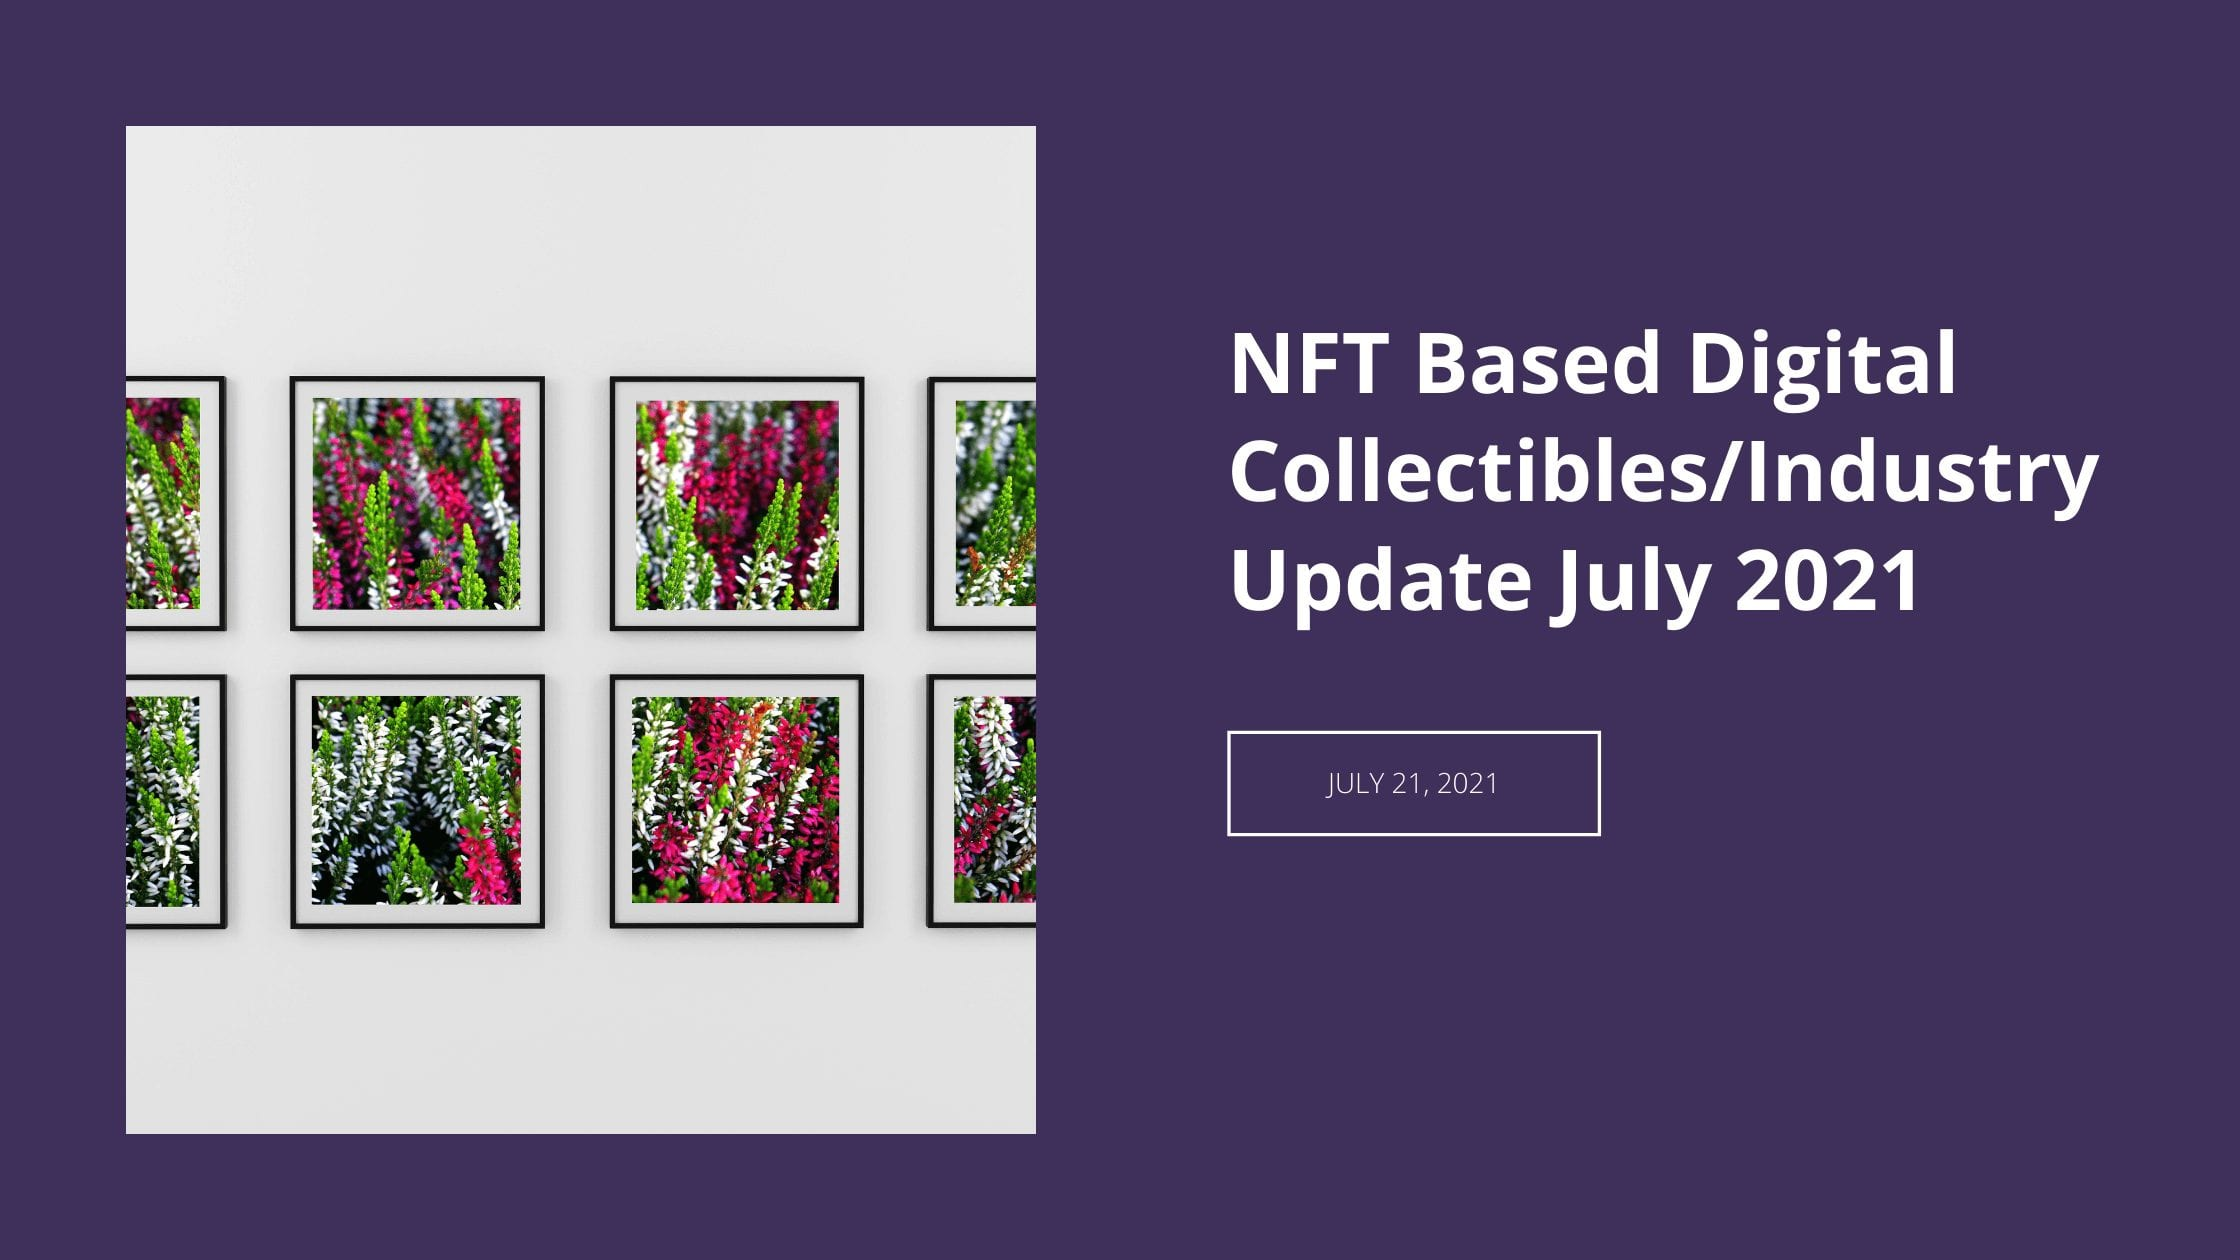 NFT Based Digital Collectibles